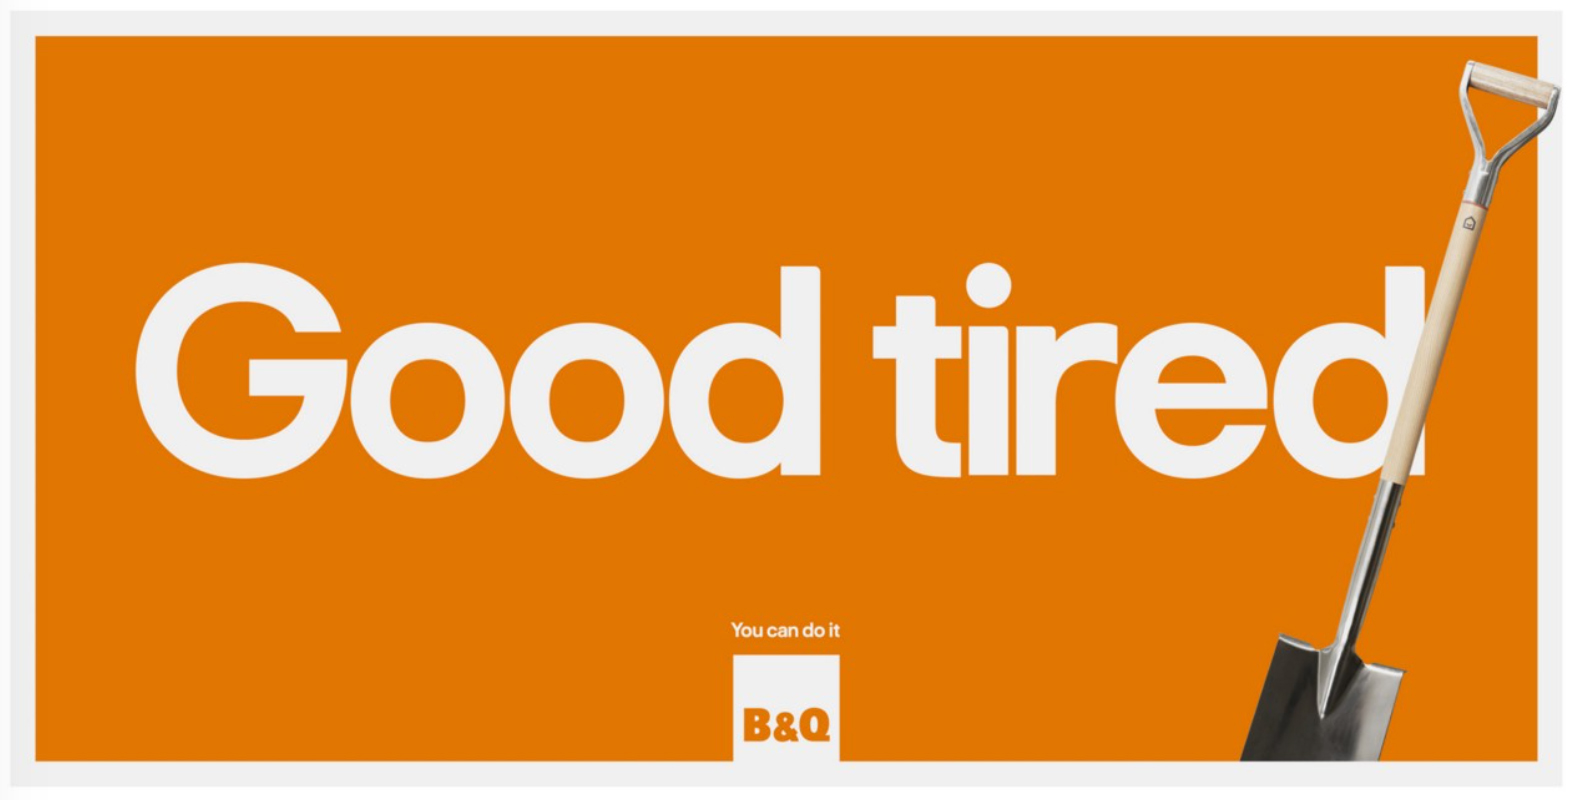 The words 'Good tired.' next to a spade